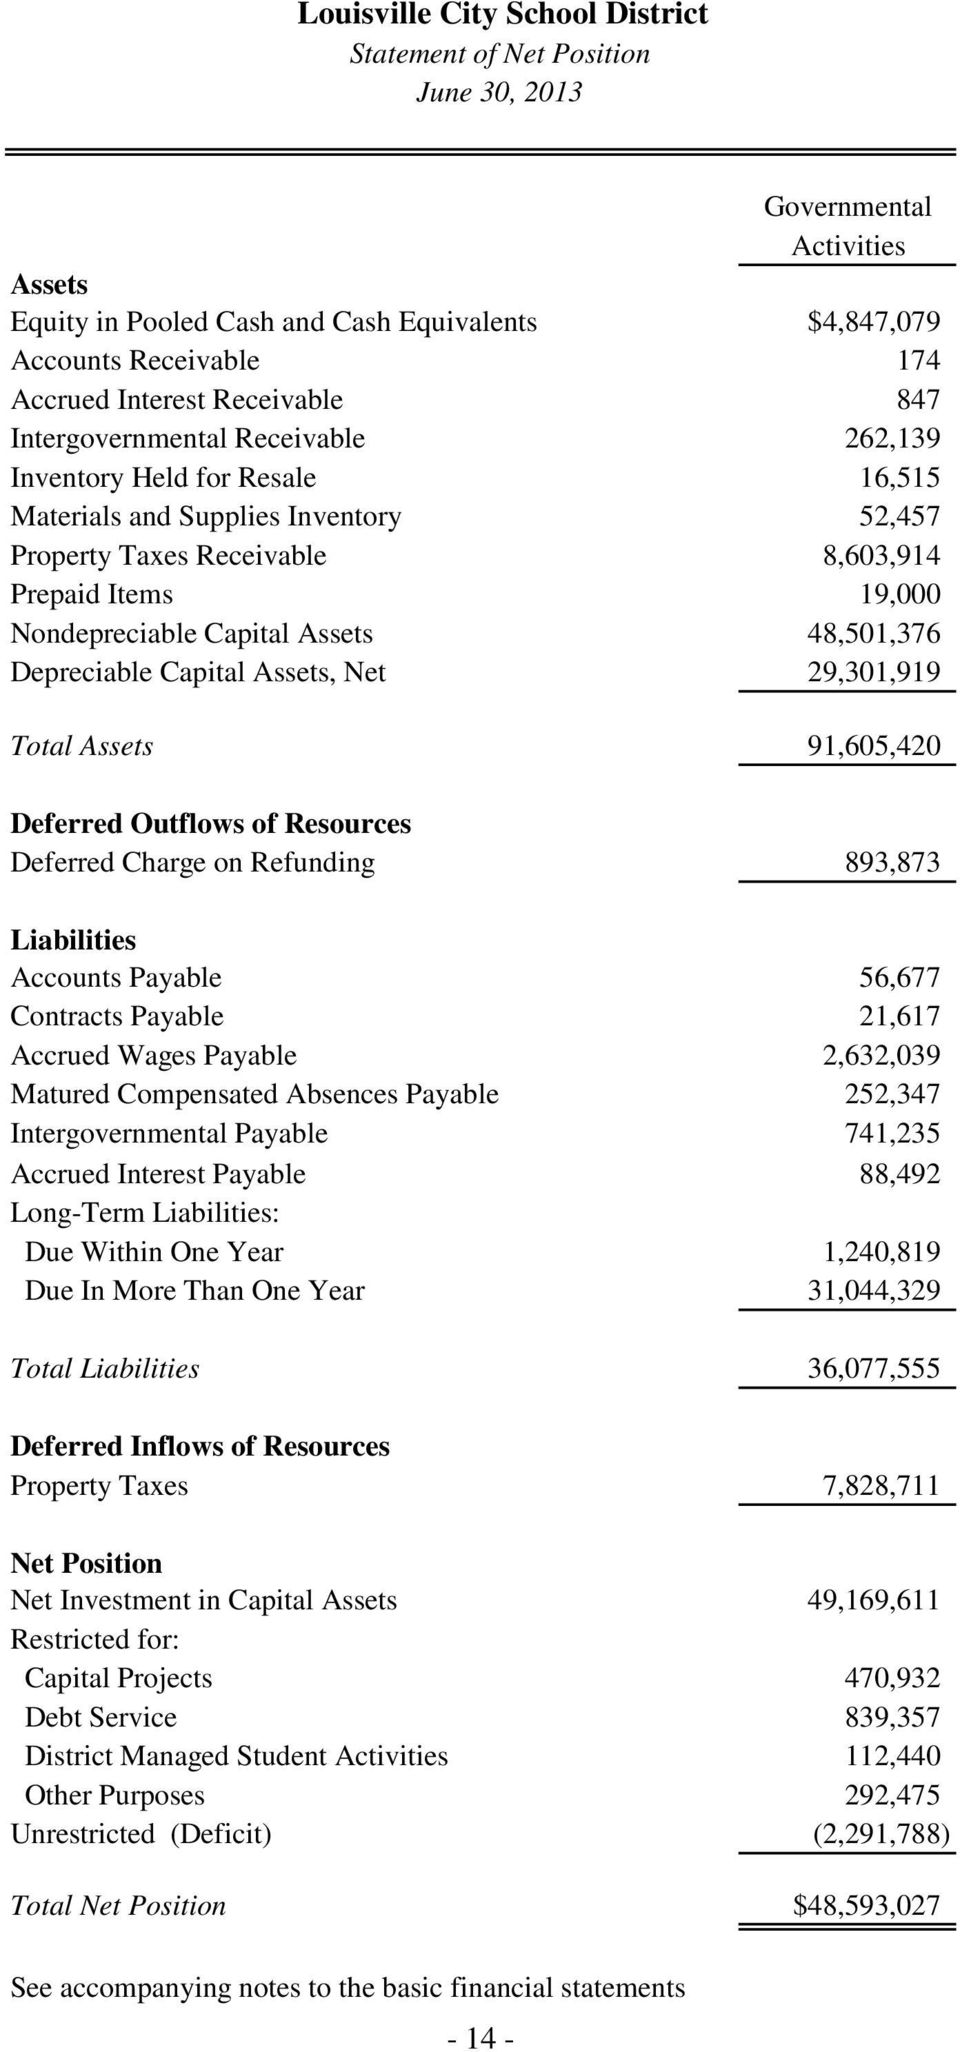 Depreciable Capital Assets, Net 29,301,919 Total Assets 91,605,420 Deferred Outflows of Resources Deferred Charge on Refunding 893,873 Liabilities Accounts Payable 56,677 Contracts Payable 21,617